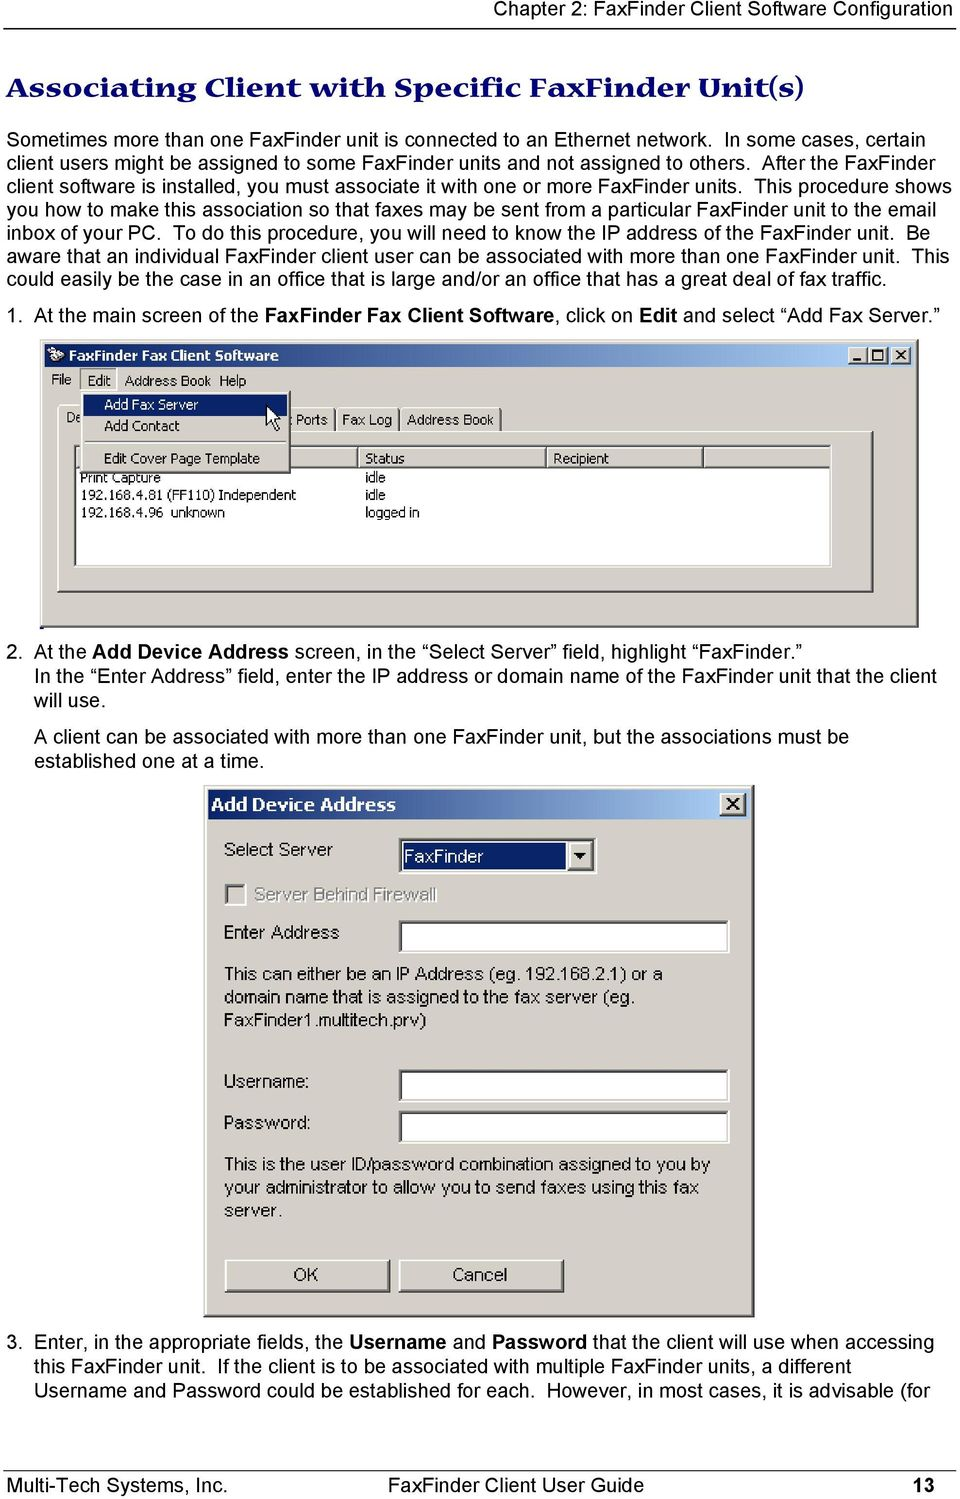 After the FaxFinder client software is installed, you must associate it with one or more FaxFinder units.